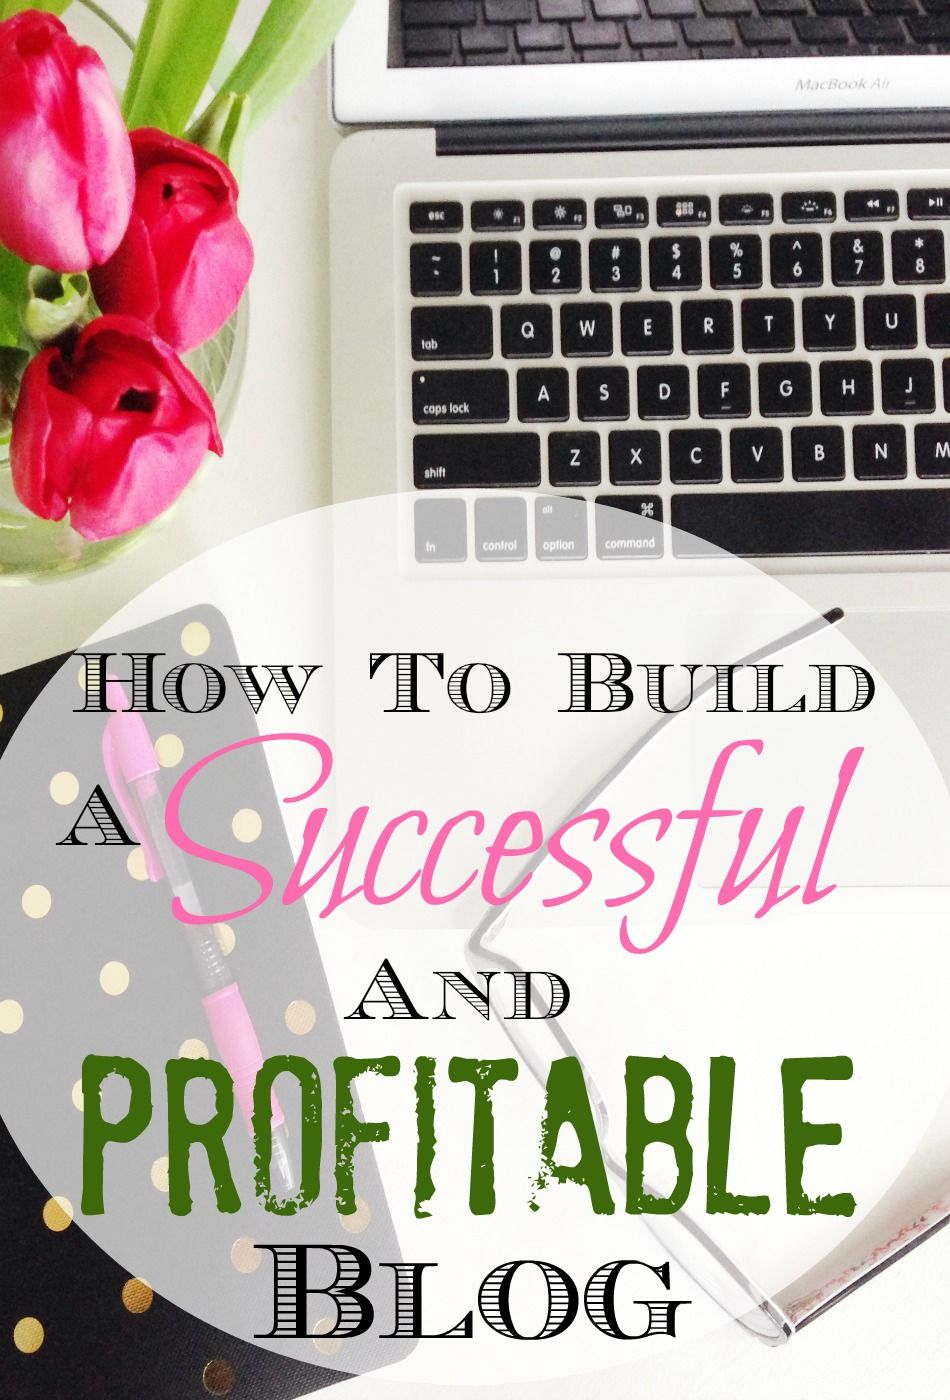 How to Build a Successful and Profitable Writing Business